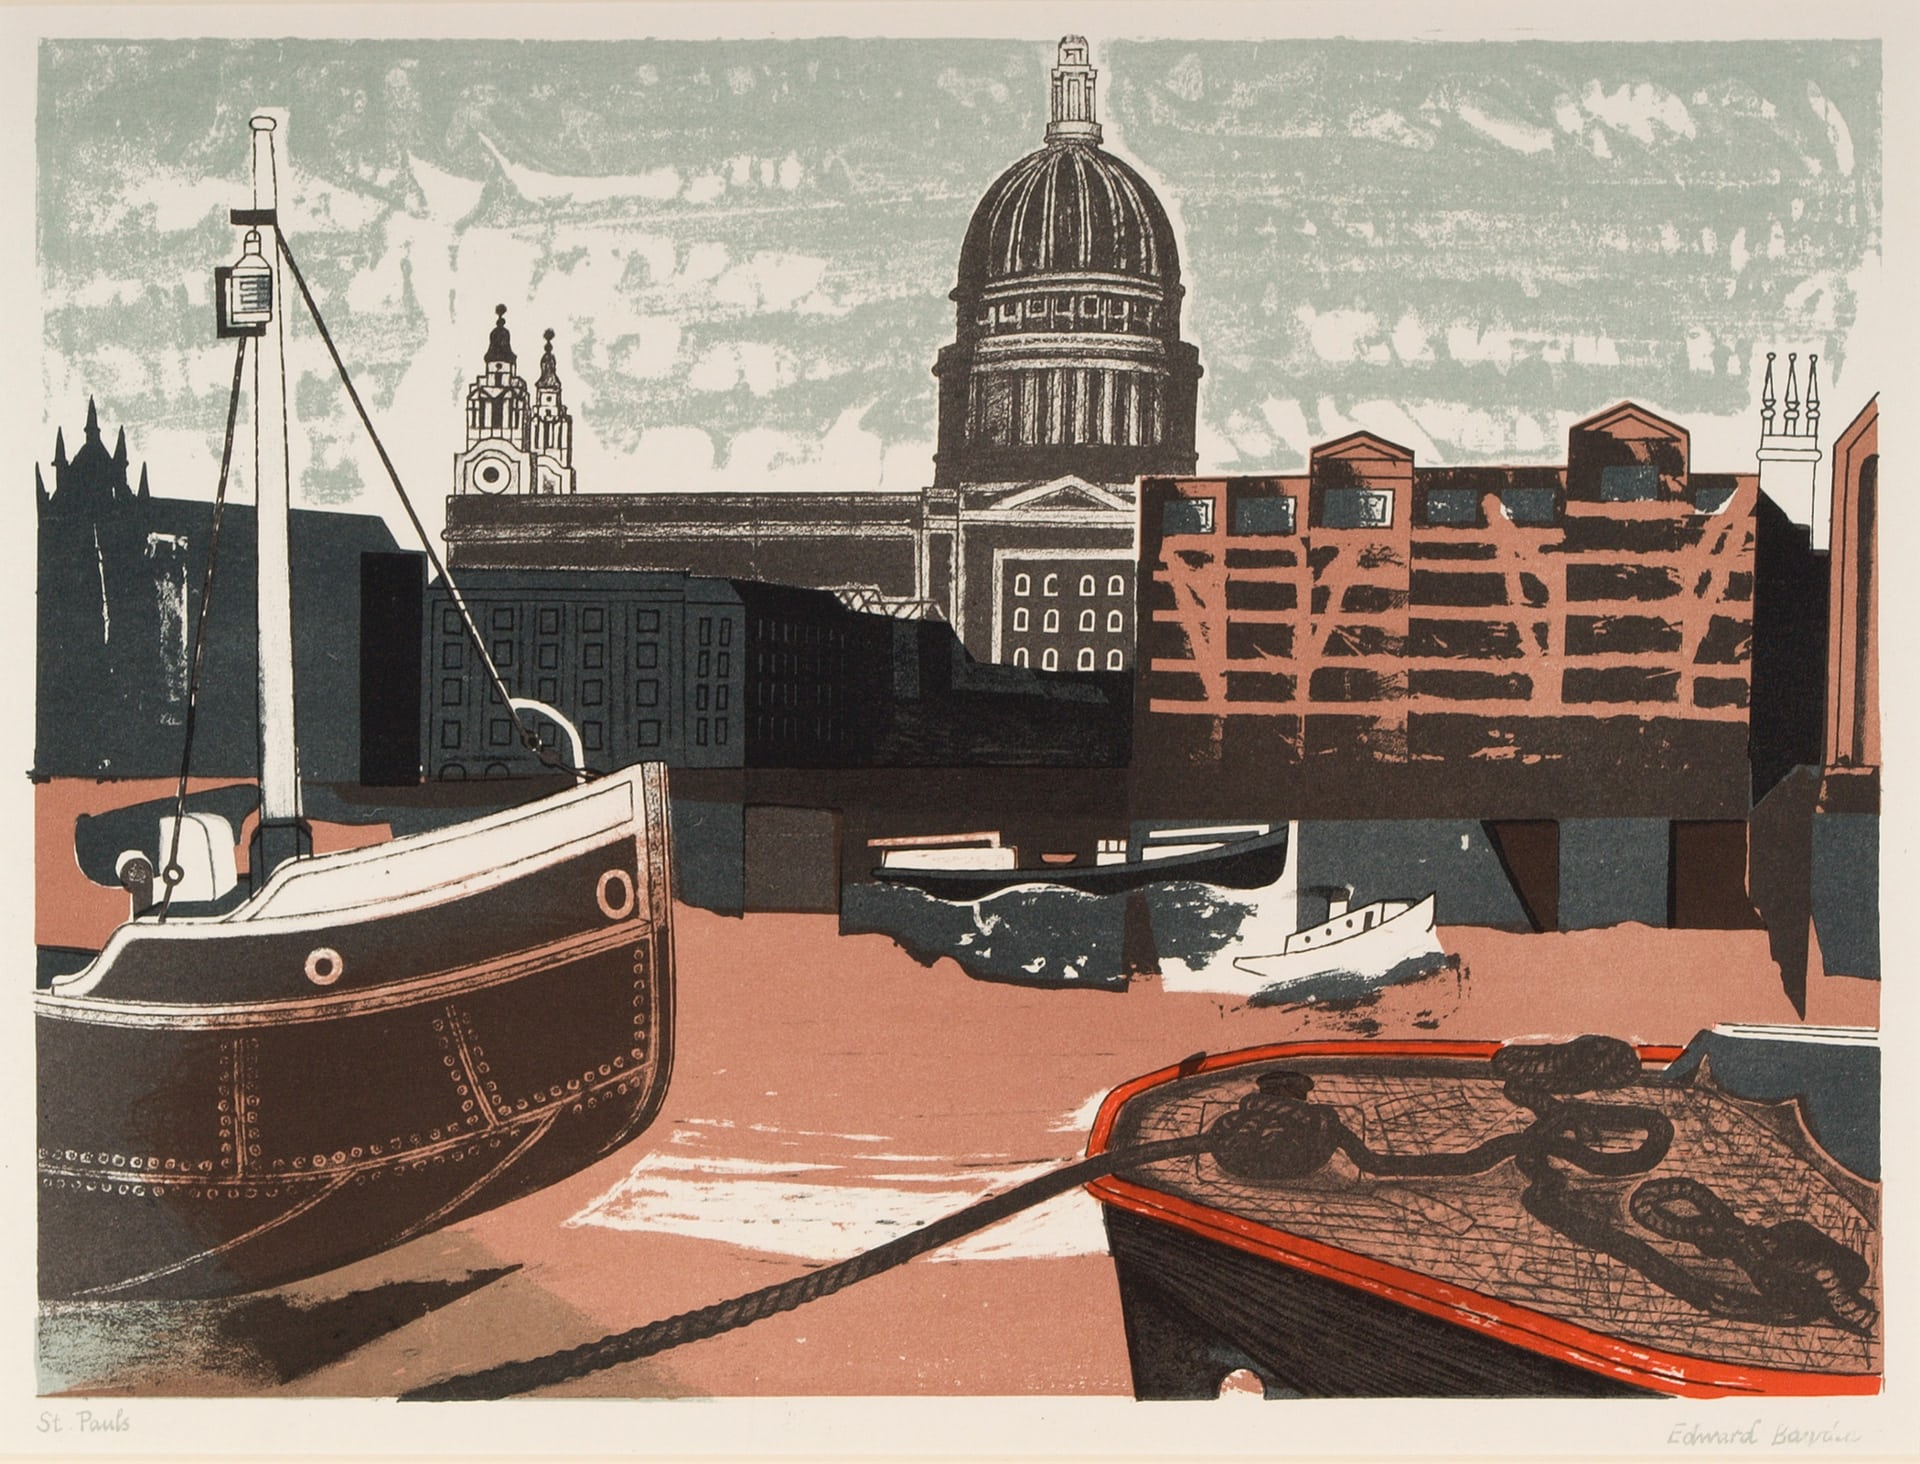 11_St Paul's, 1958, colour autolithograph